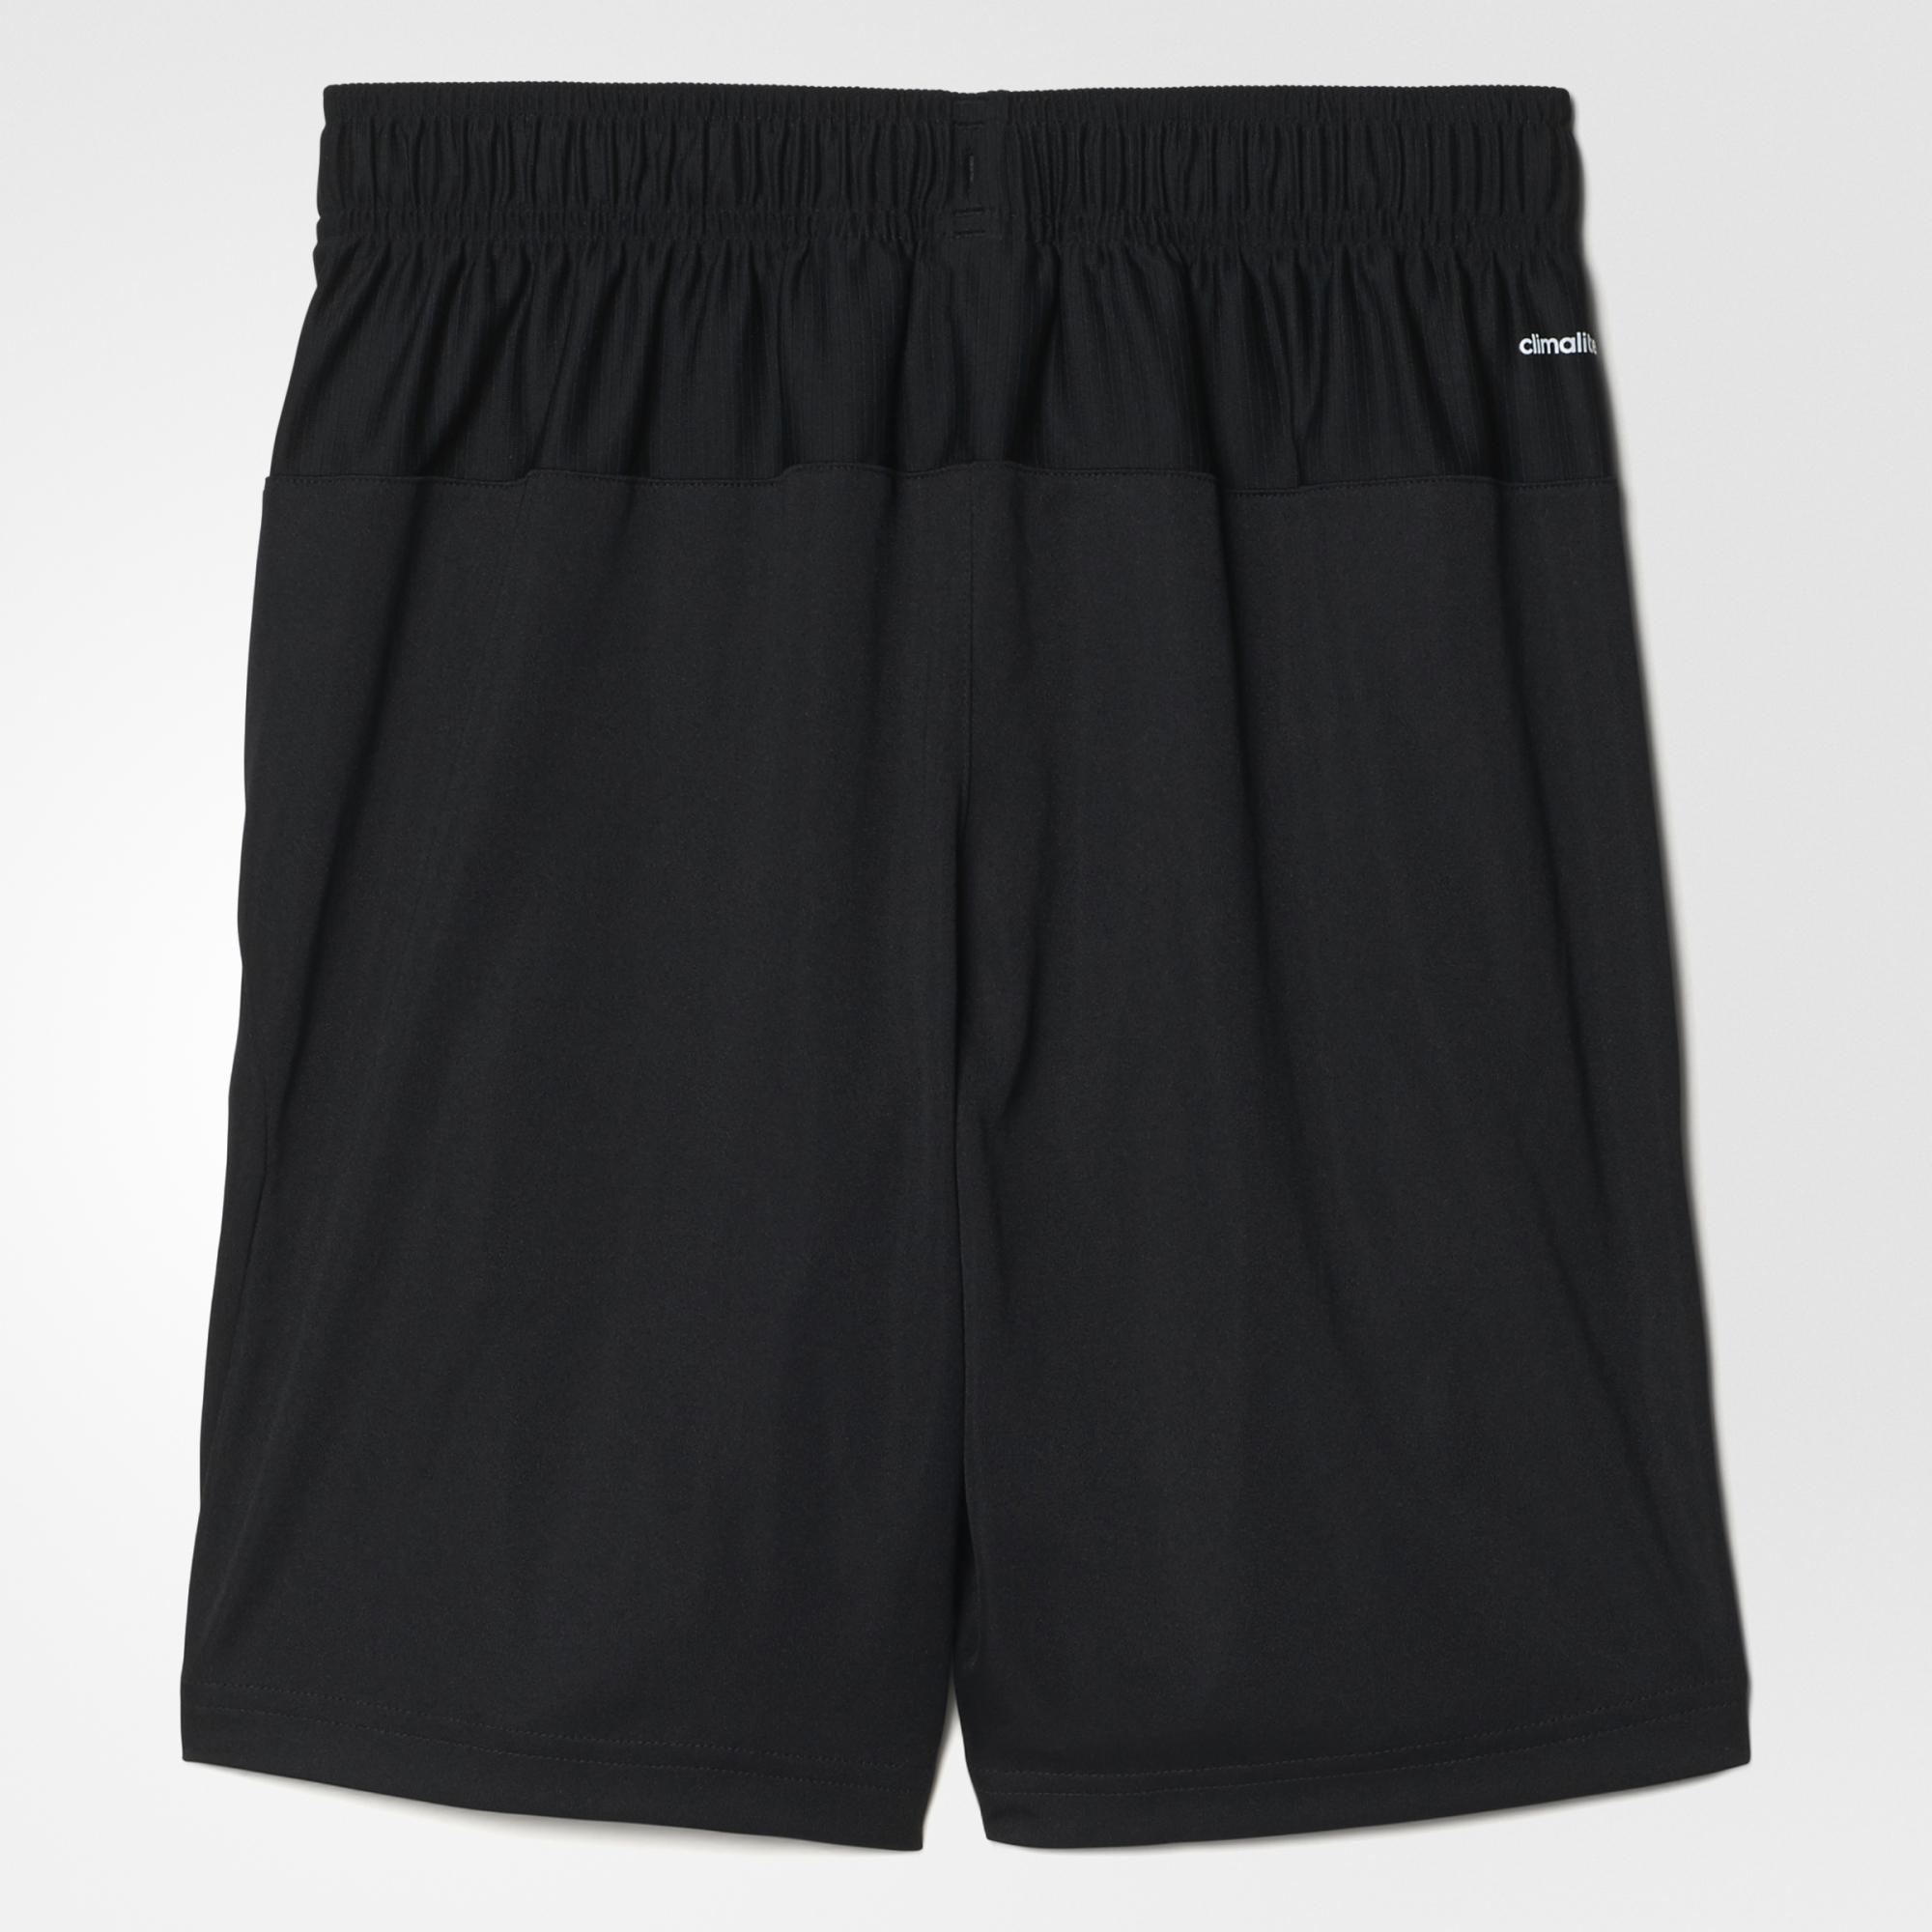 Adidas Boys Club Shorts - Black/White - Tennisnuts.com